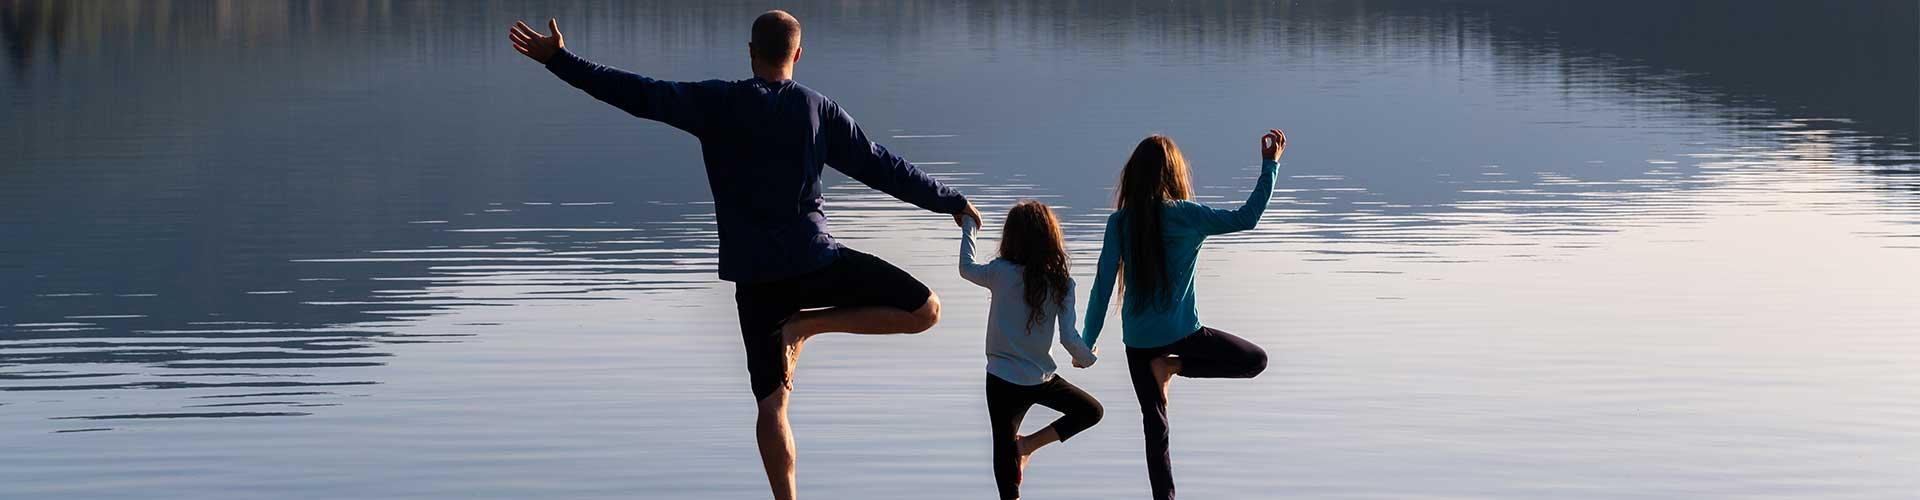 Family doing yoga at end of dock